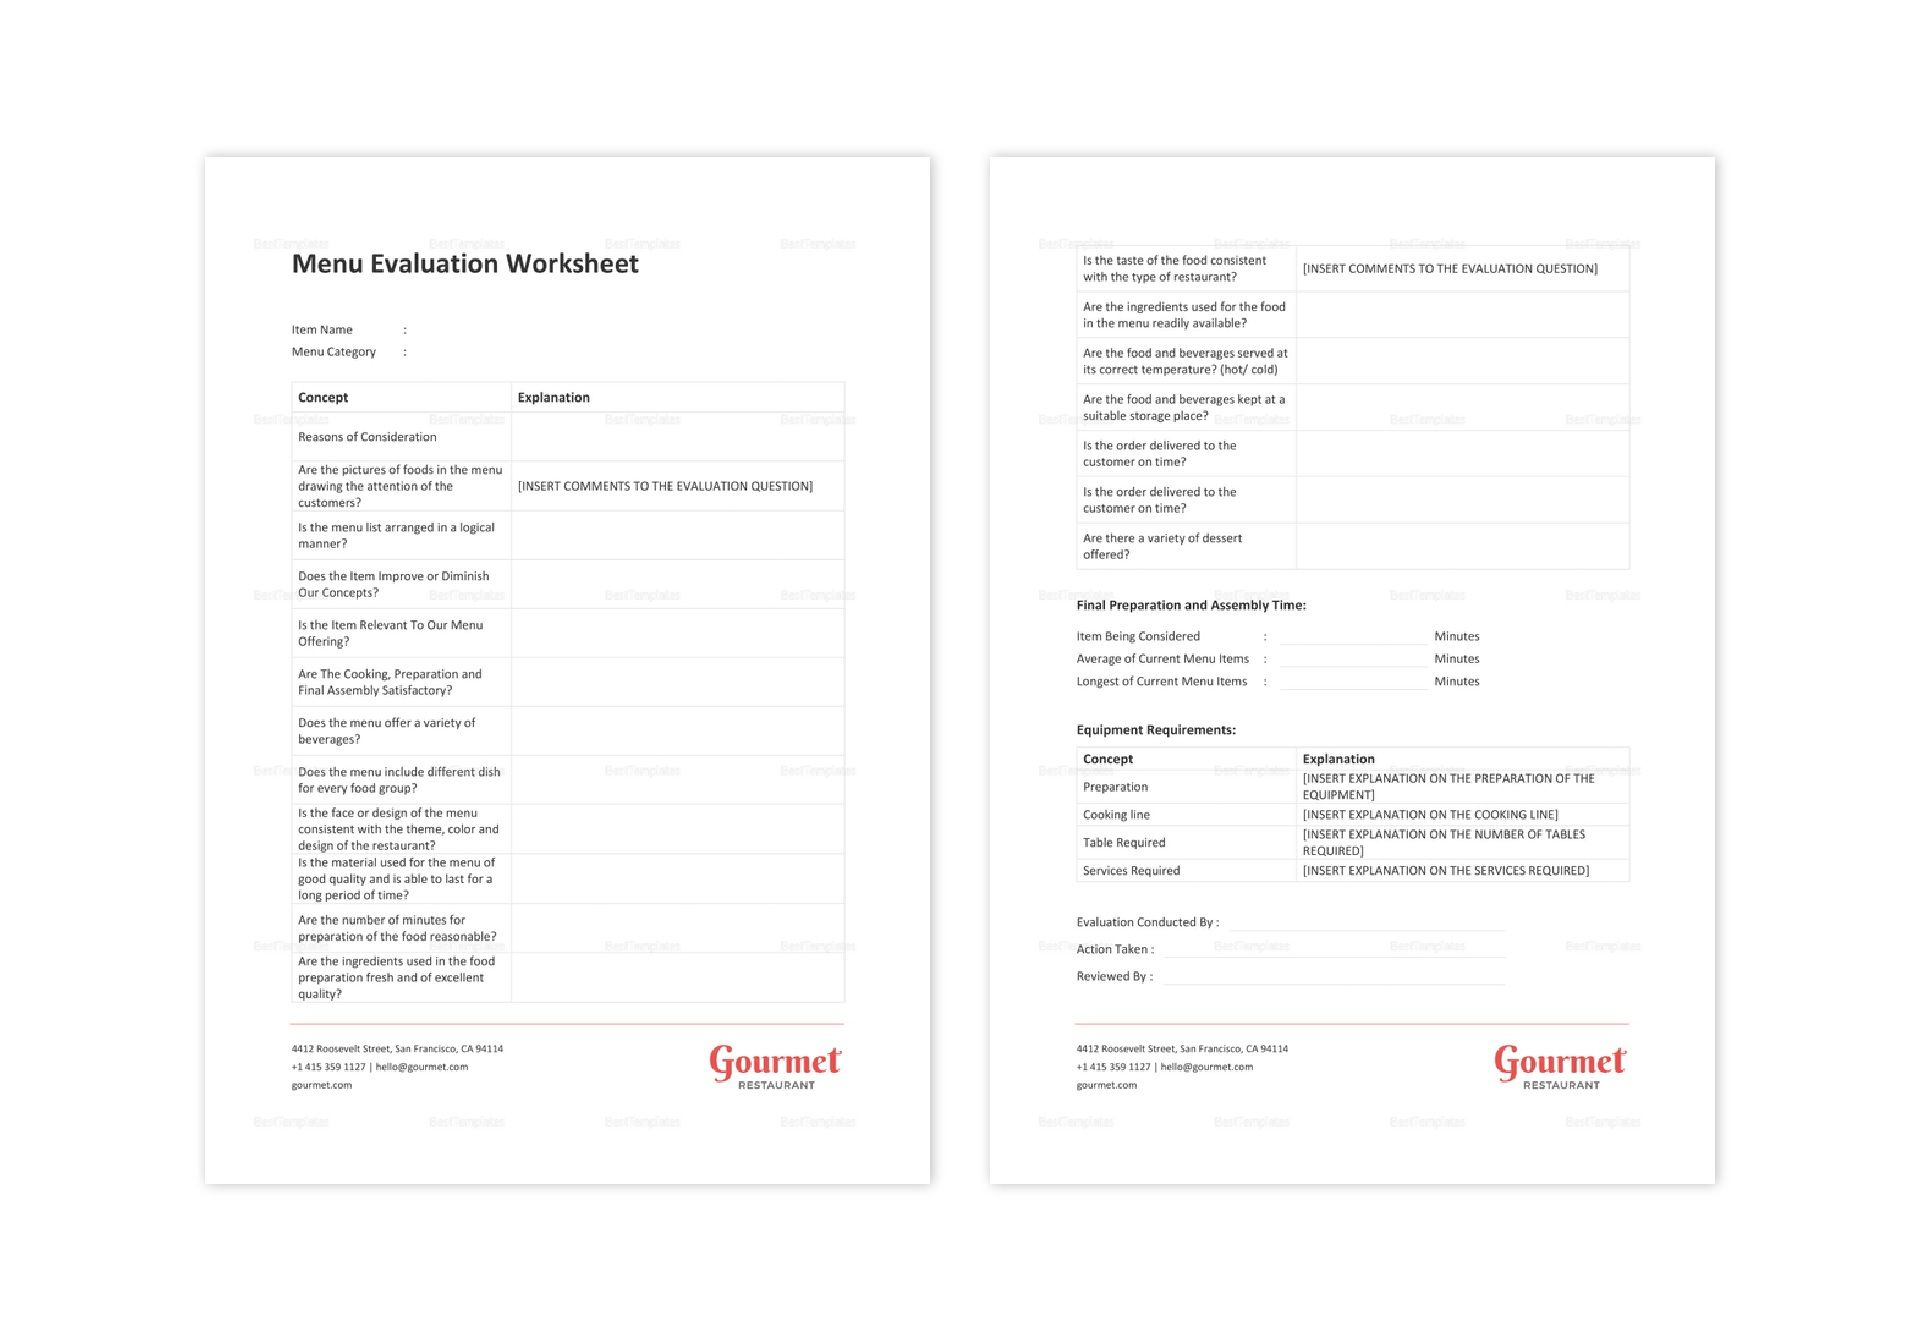 Restaurant Menu Evaluation Worksheet Template in Word